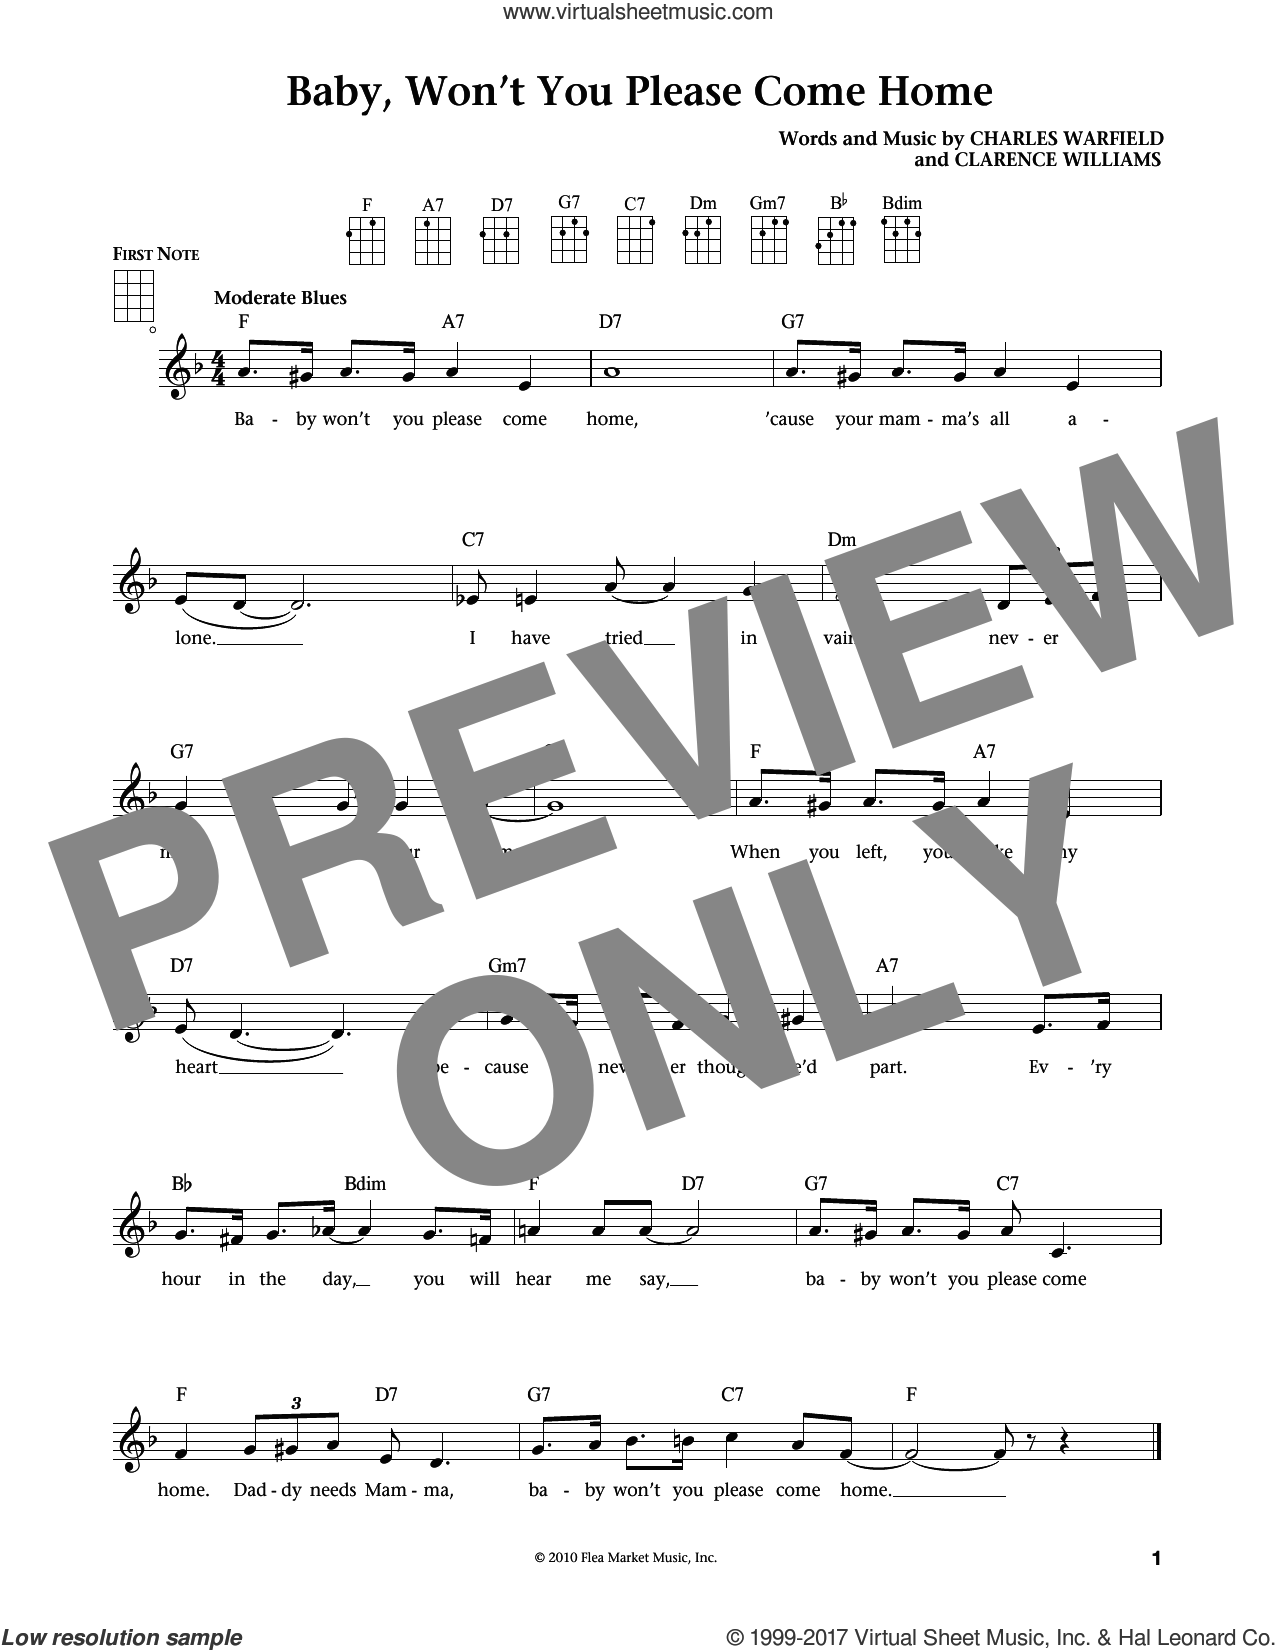 Baby, Won't You Please Come Home (from The Daily Ukulele) (arr. Liz and Jim Beloff) sheet music for ukulele by Clarence Williams, Jim Beloff, Liz Beloff, Bessie Smith and Charles Warfield, intermediate skill level